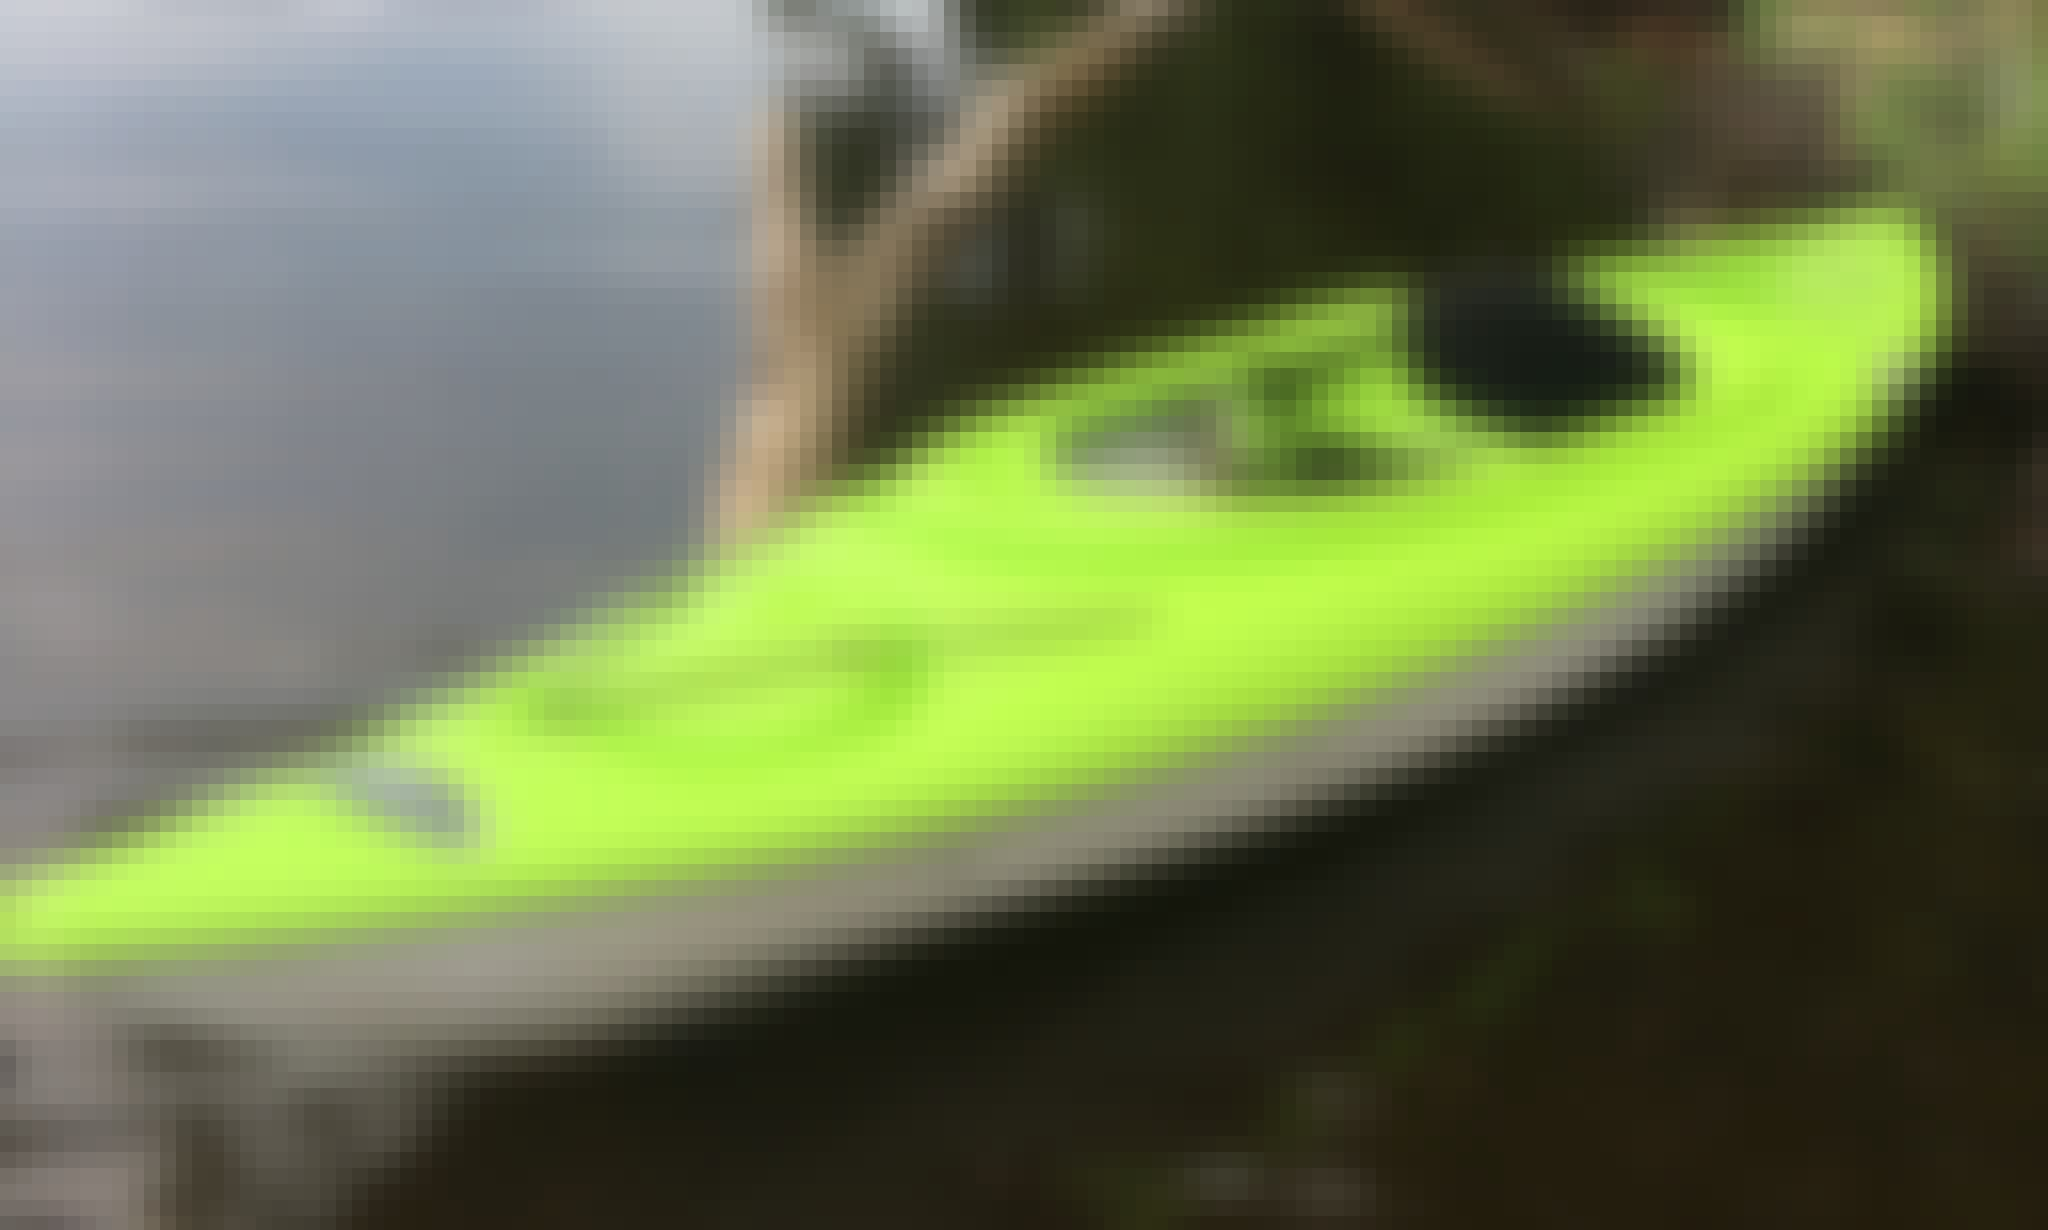 Kayak Rentals With Paddle & Lifevest in Wisconsin Rapids